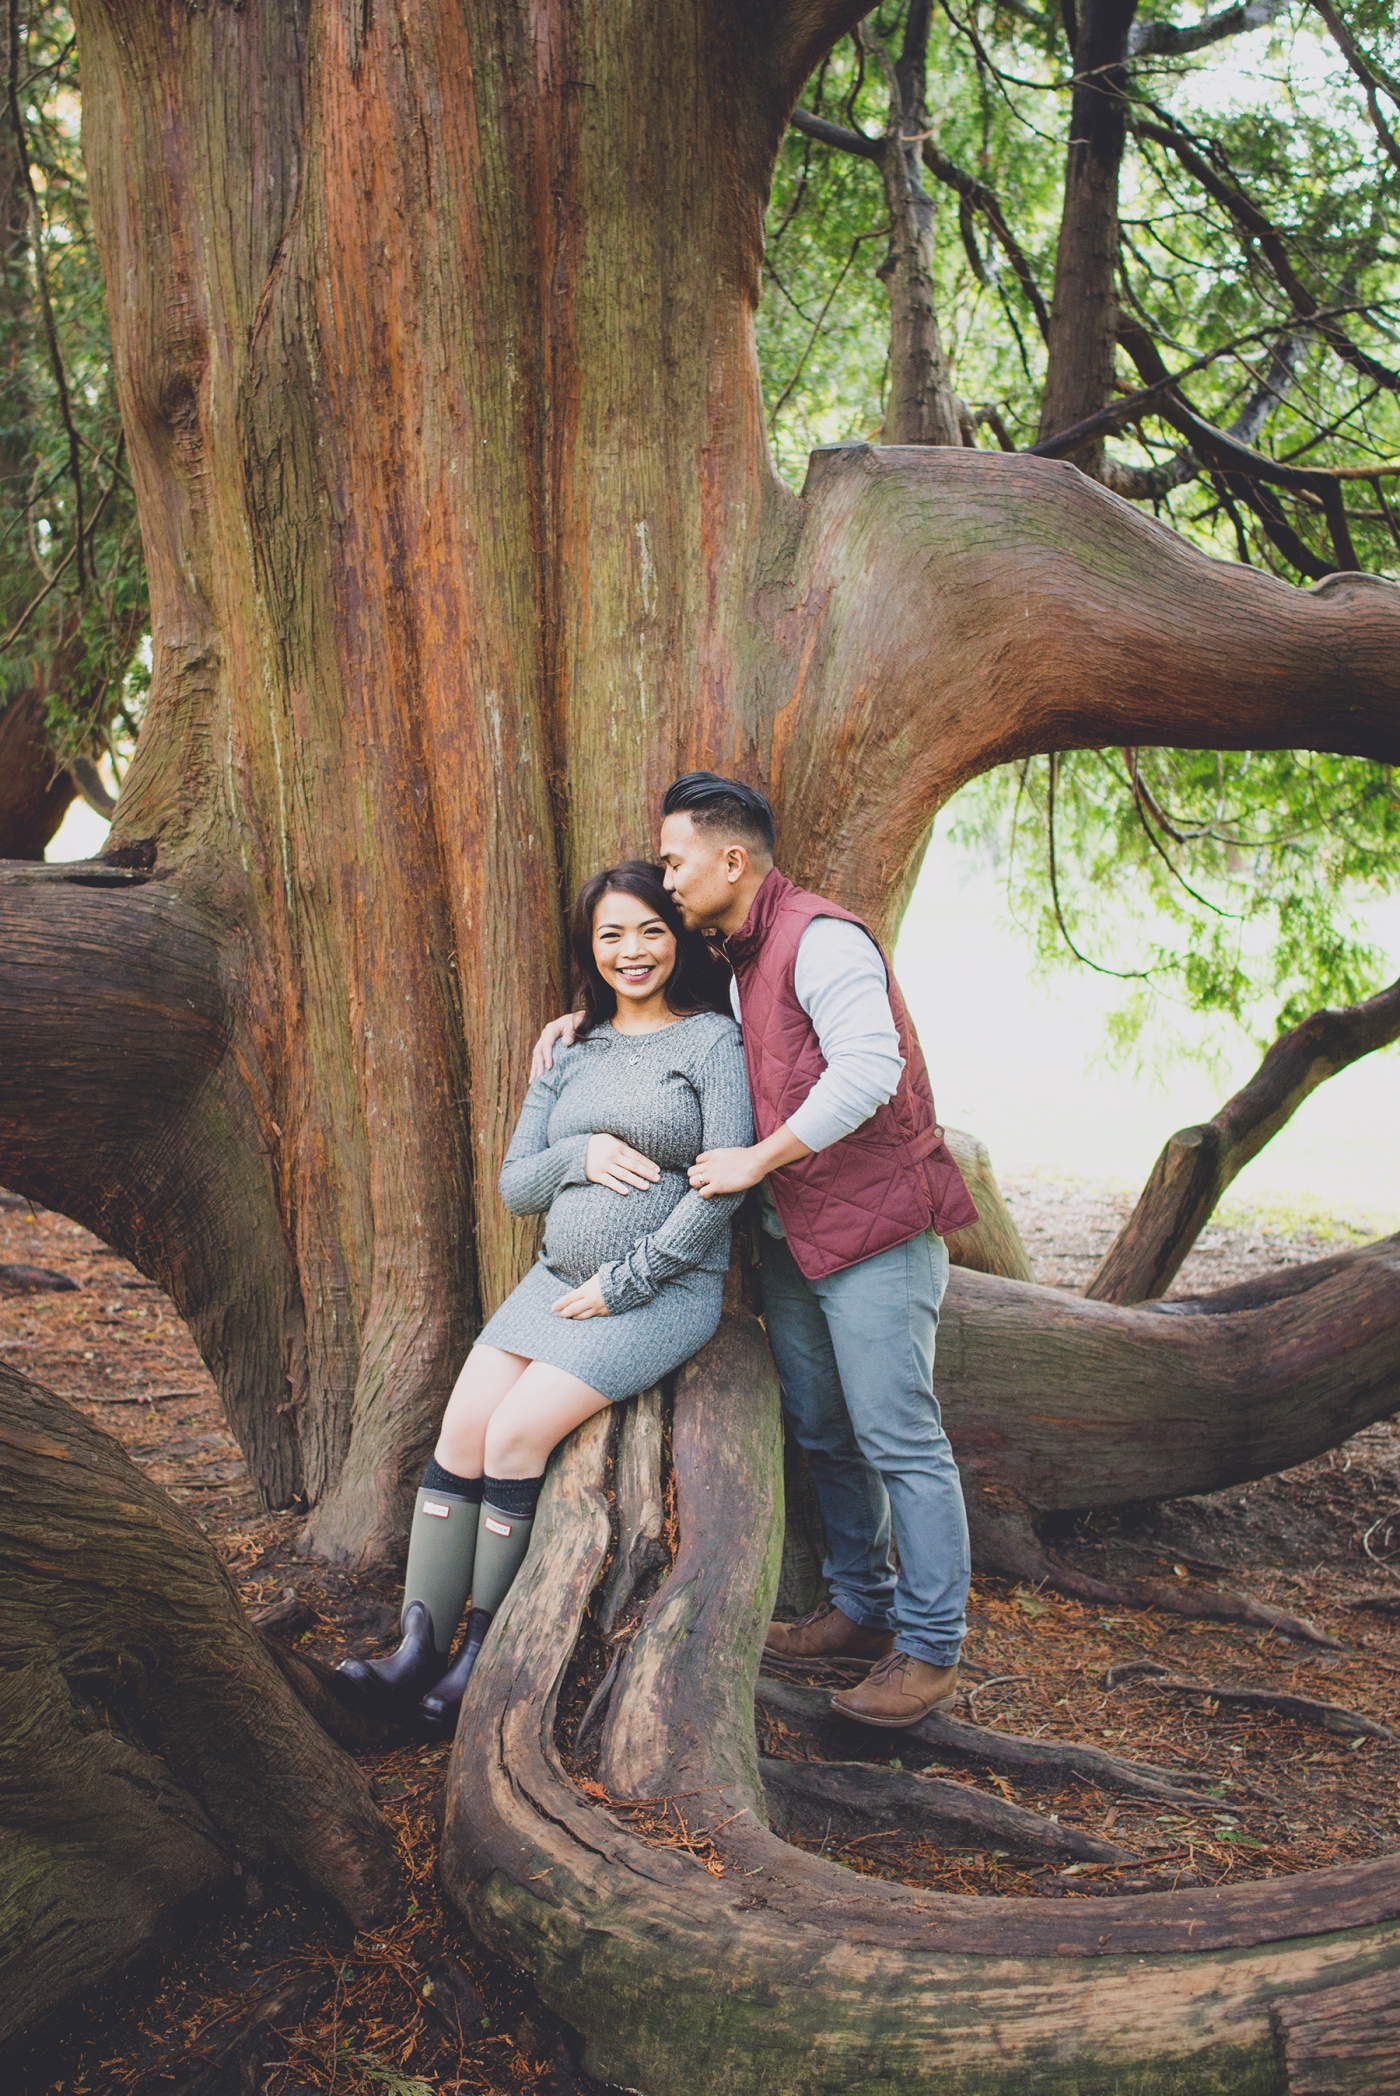 paula_p_maternity_the_royal_squirrel_seattle_family_photographer_2016_dsc_7952